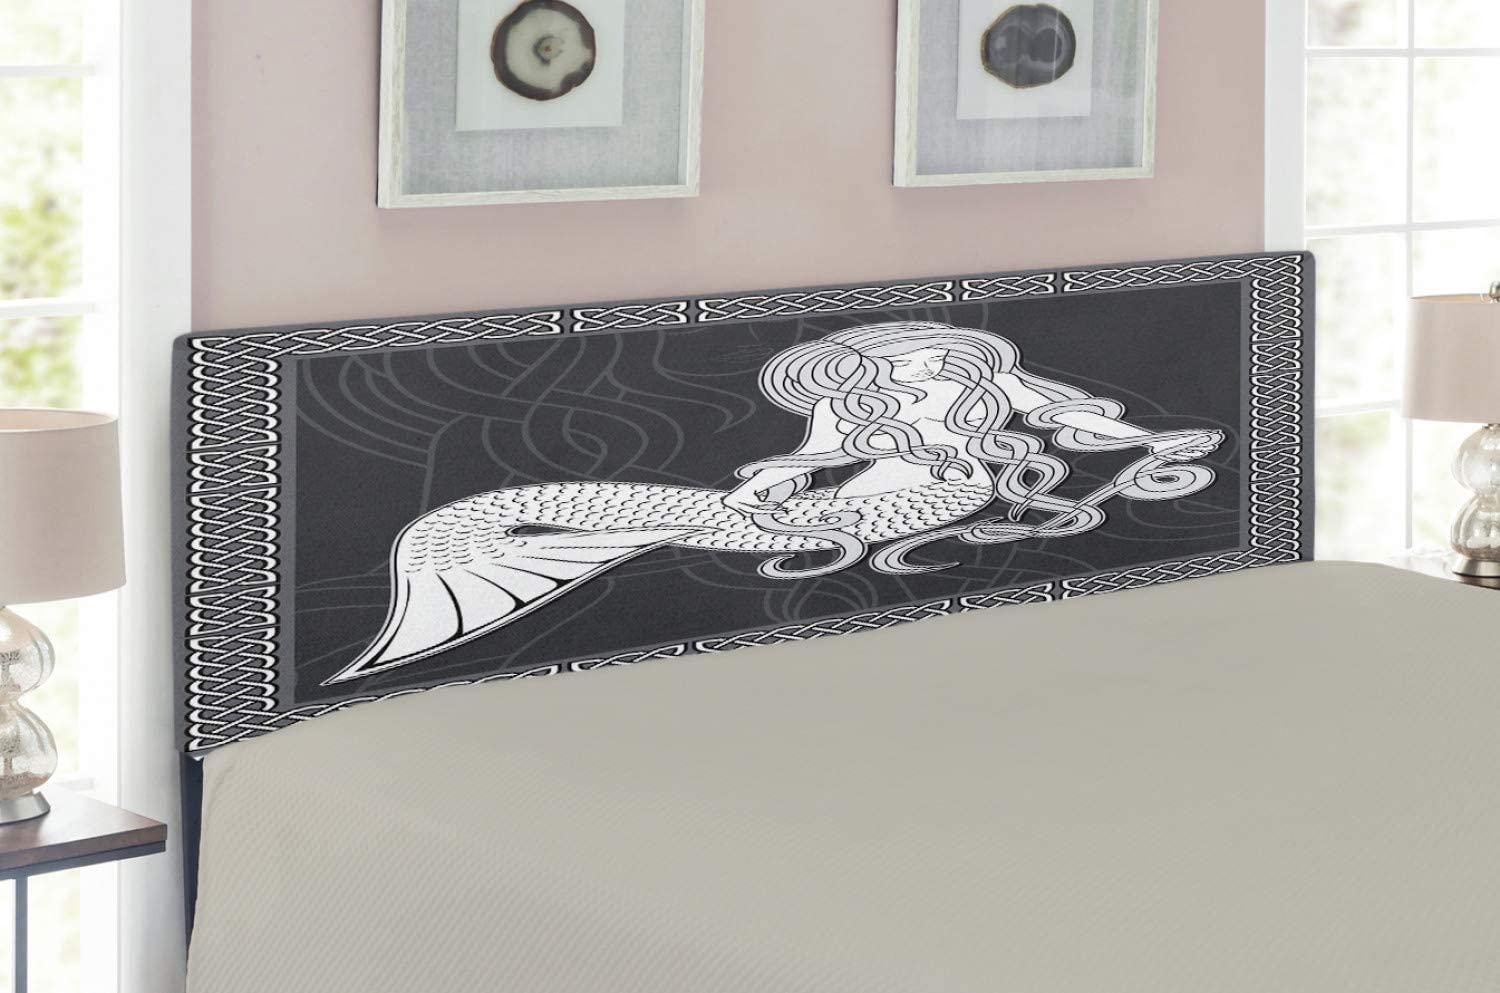 Ambesonne Mermaid Headboard, Retro Art Illustration of a Mermaid Brushing Hair and Border with Celtic Patterns, Upholstered Decorative Metal Bed Headboard with Memory Foam, Full Size, Grey